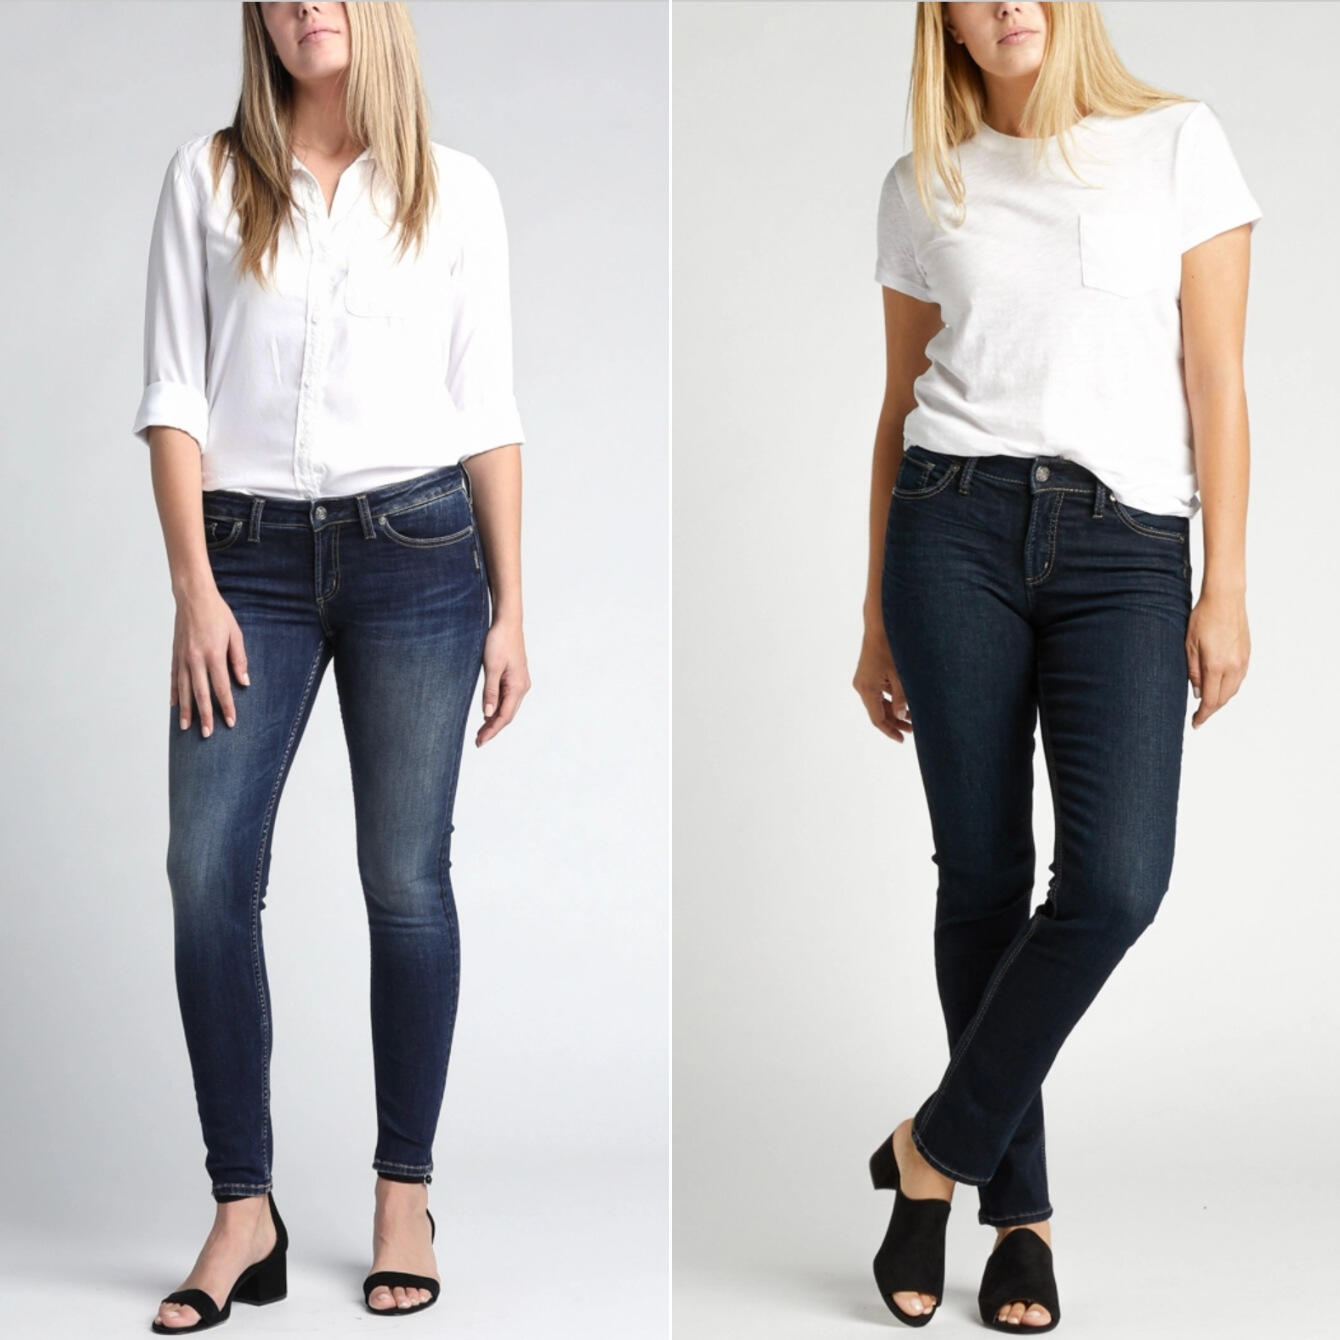 Low rise vs. high rise jeans